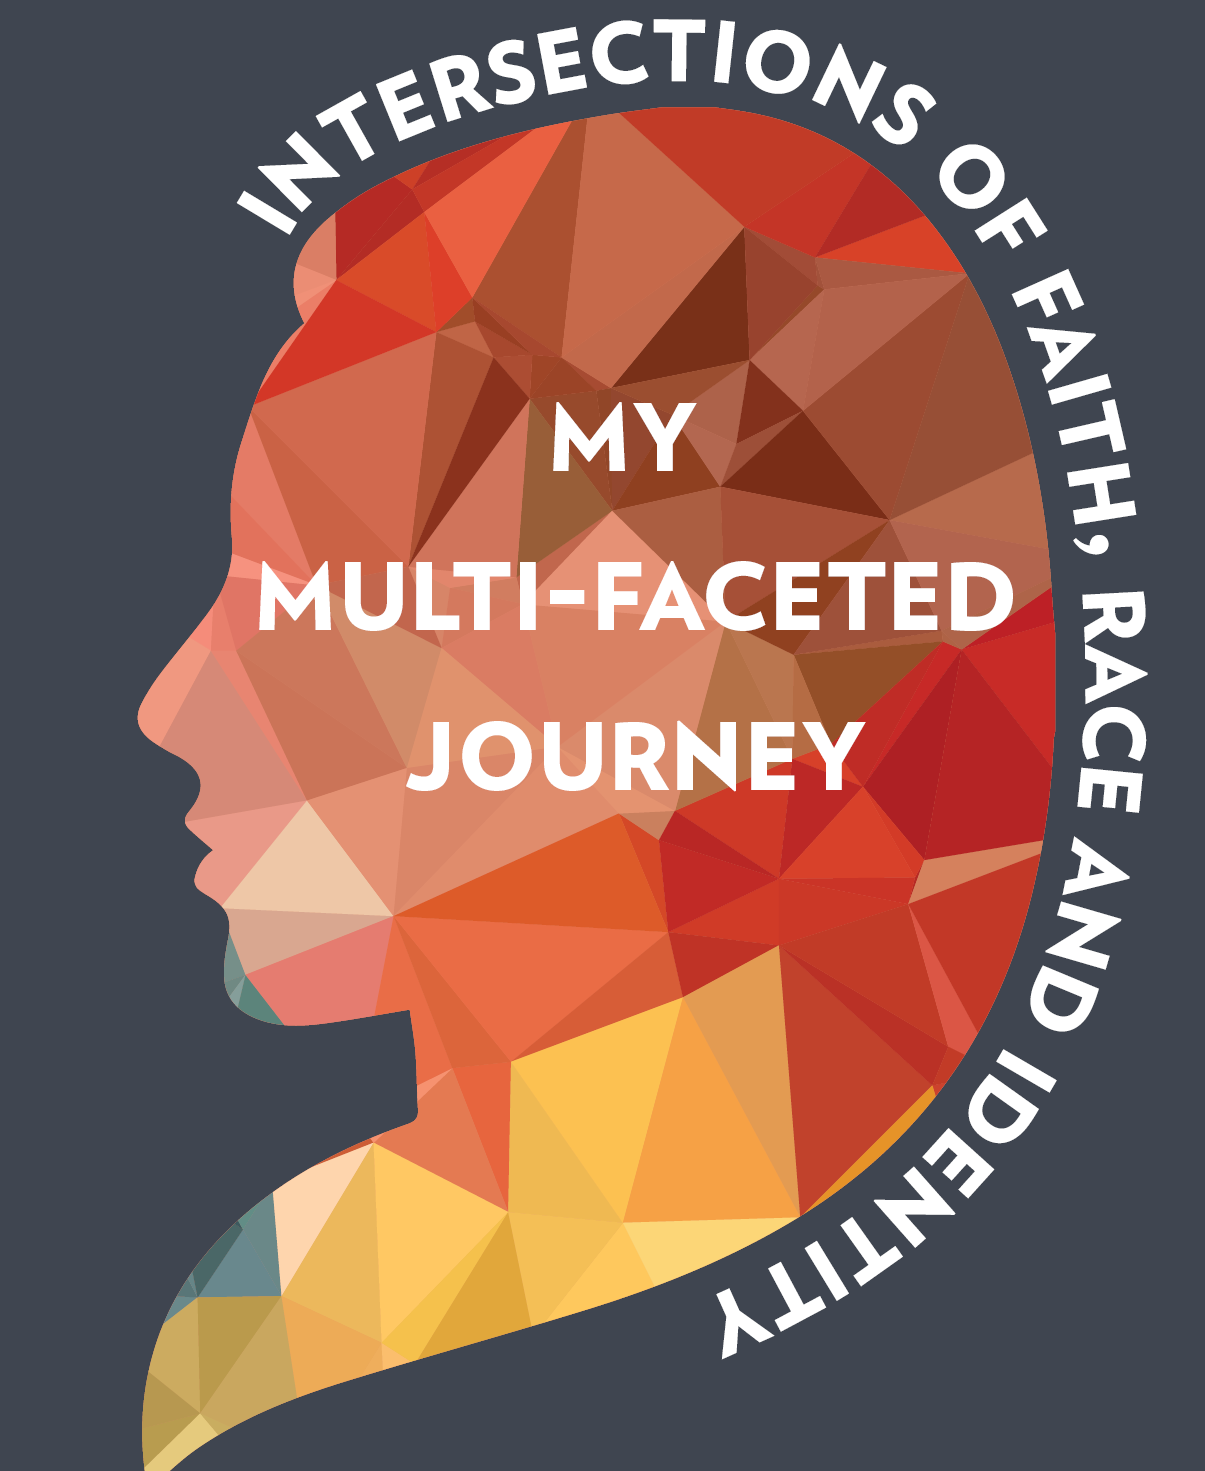 My Multi-Faceted Journey